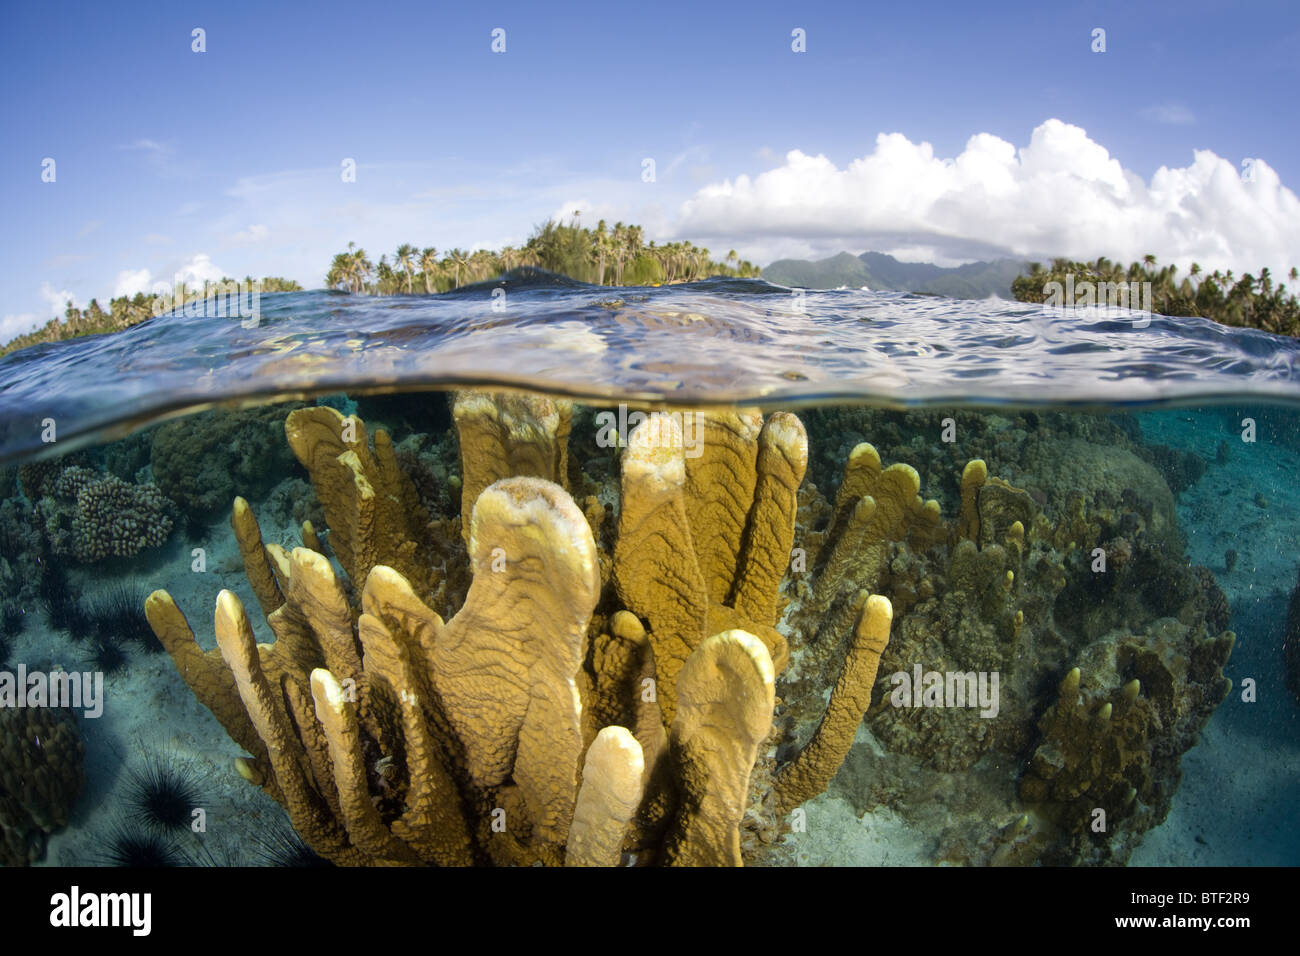 A fire coral colony, Millipora sp., grows just under the surface near the edge of a French Polynesian barrier reef. - Stock Image